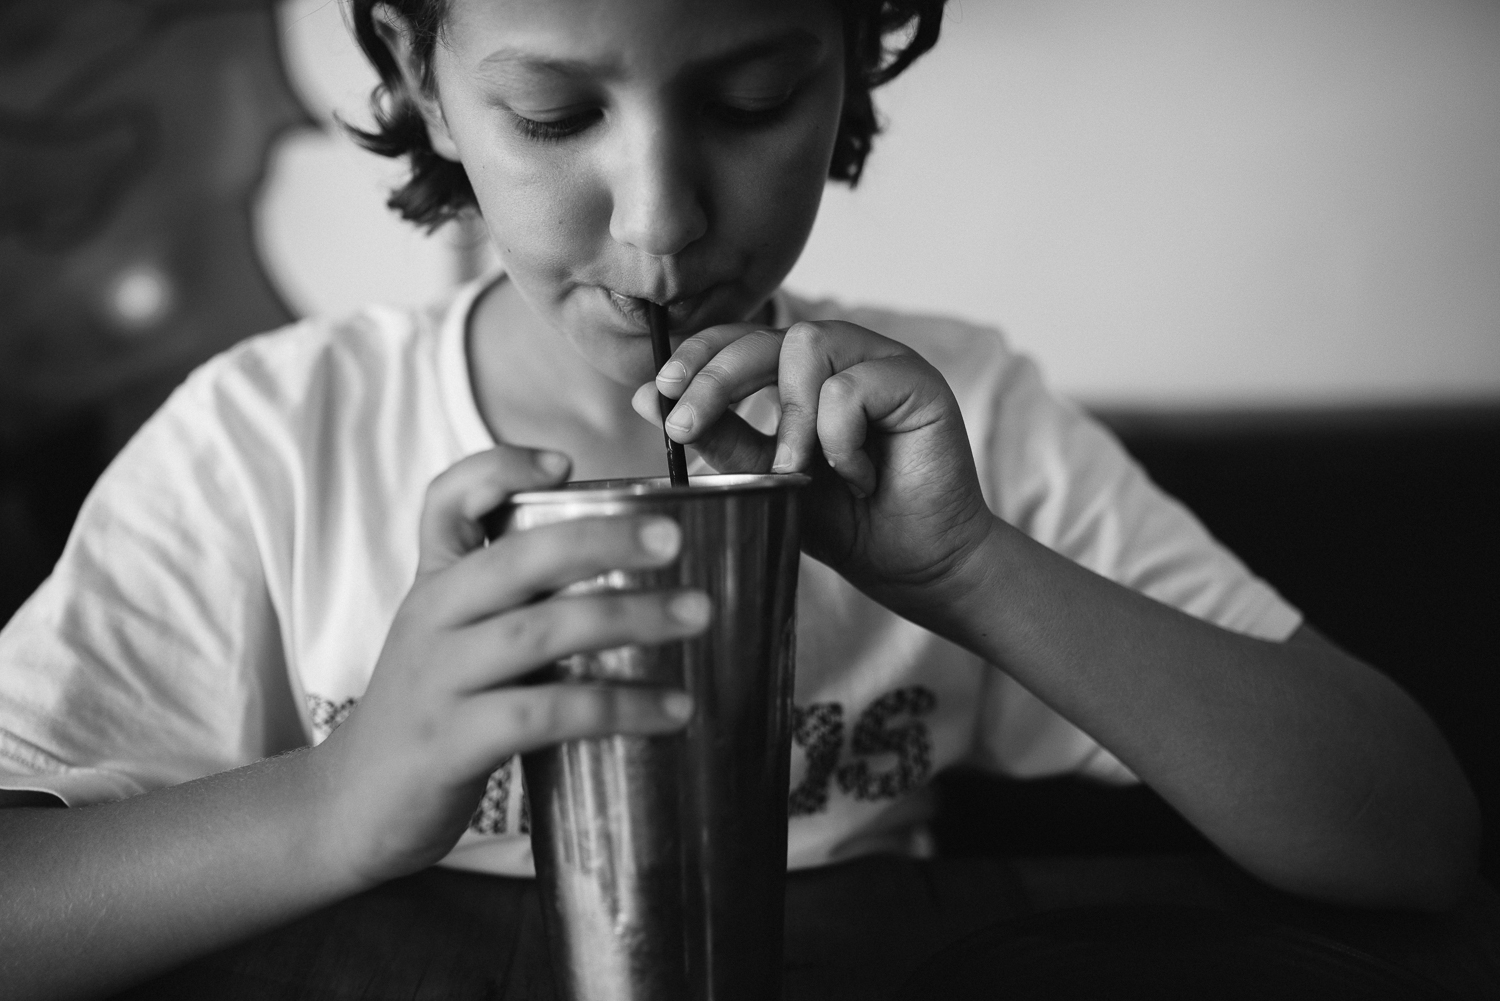 Young boy drinking milkshake in old fashioned milkshake metal cup